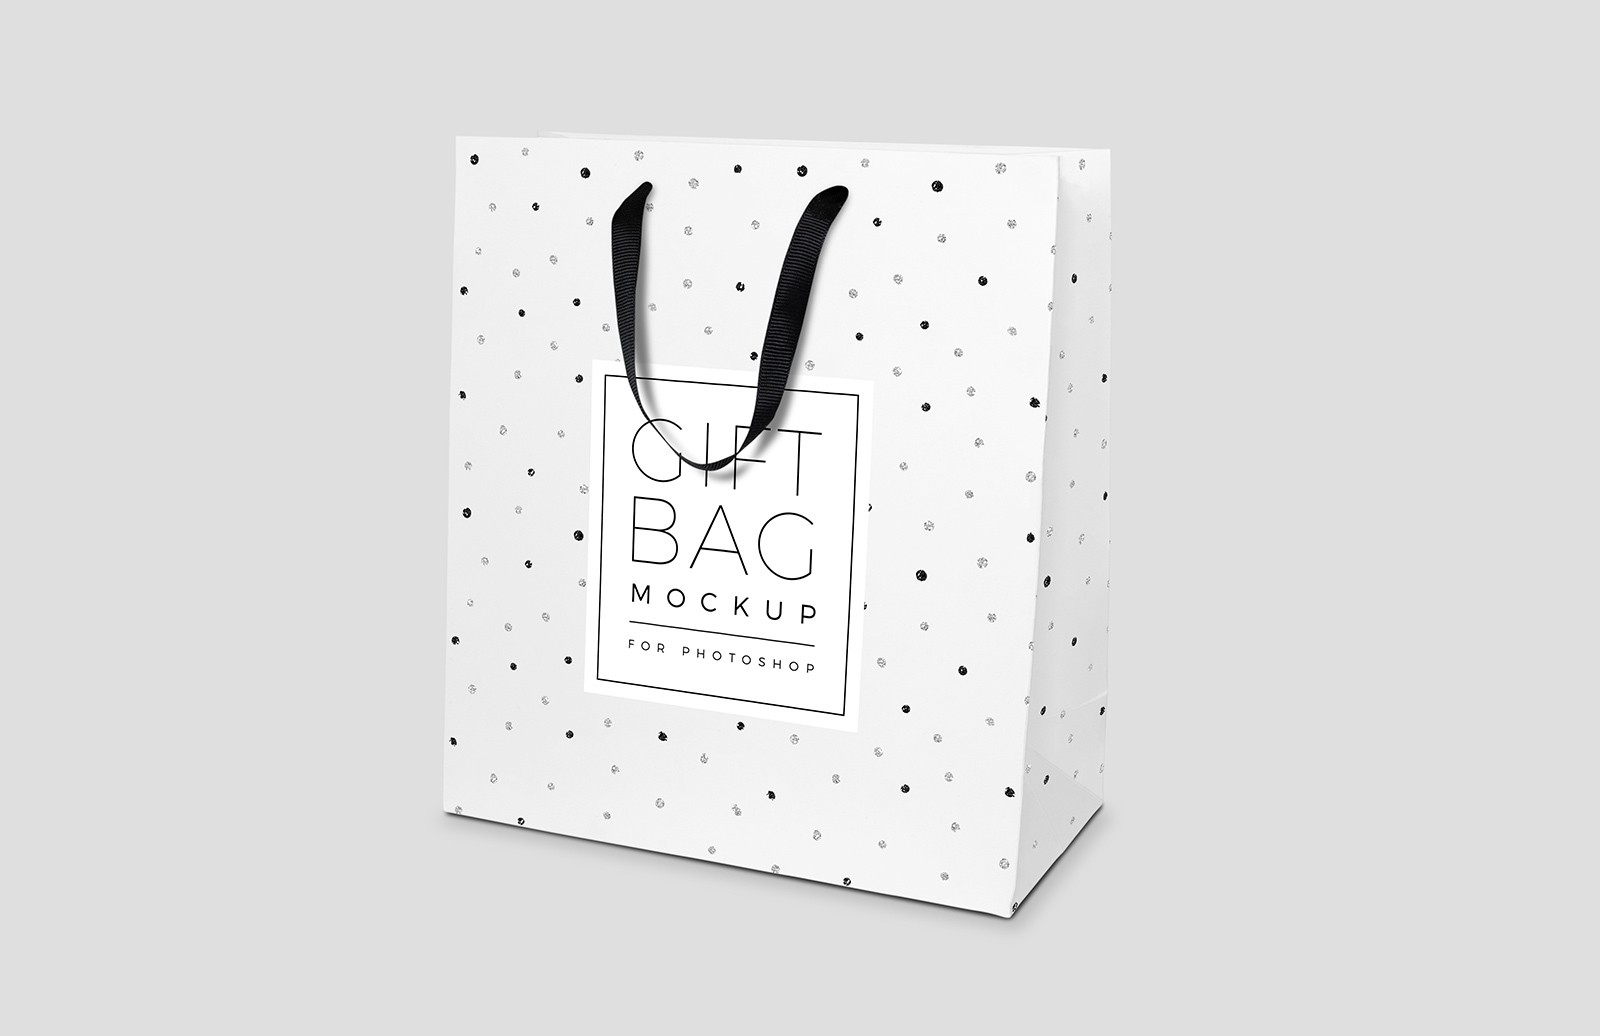 Gift Bag Mockup for Photoshop